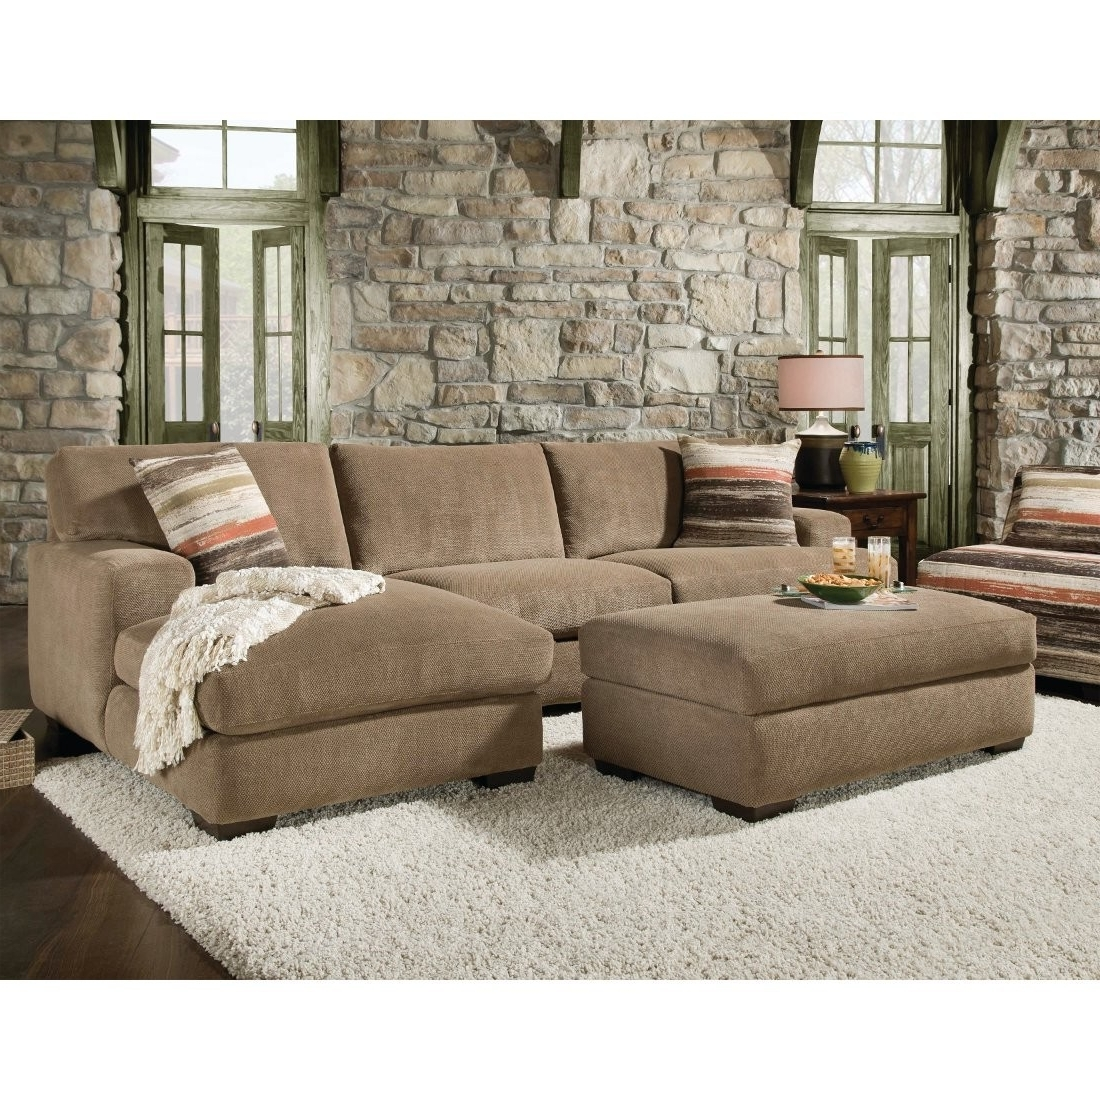 Leather Sectional Sleeper Sofa Sectional Sofas With Recliners And Intended For 2017 Chaise Sofa Sectionals (View 11 of 15)